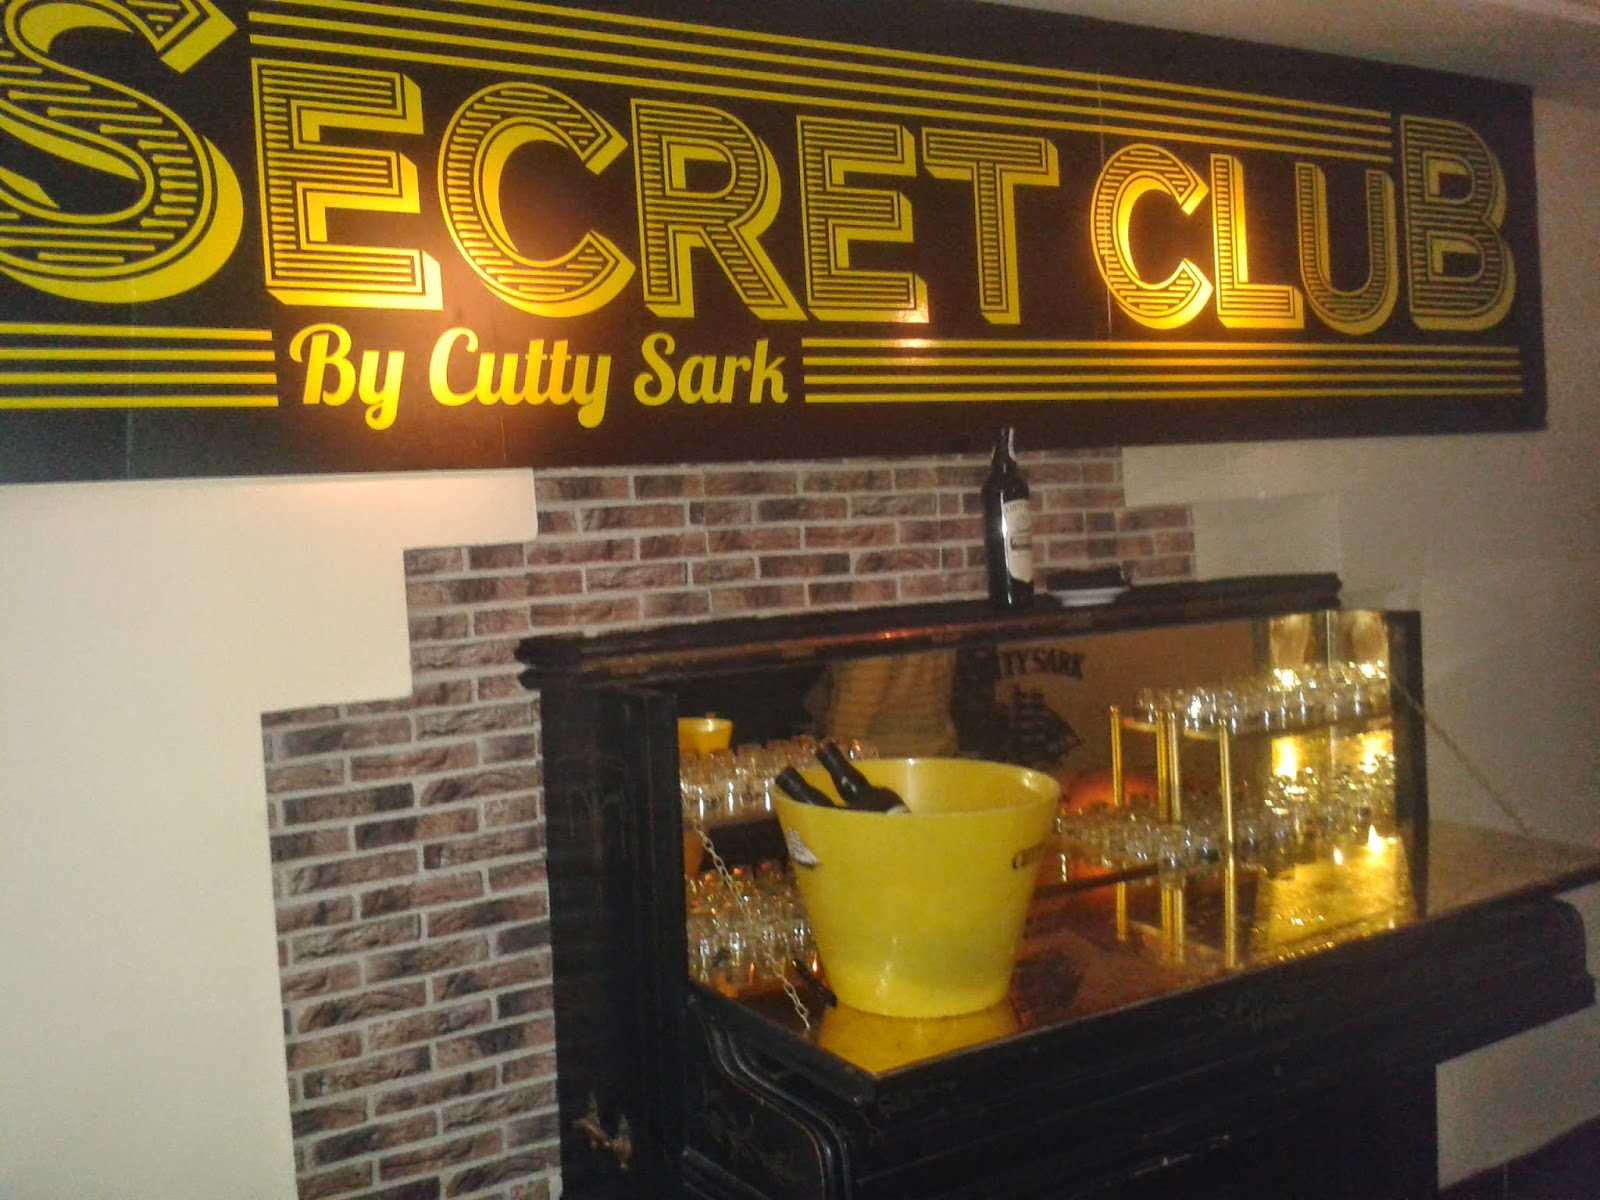 Secret Club by Cutty Sark. El Tapeador.